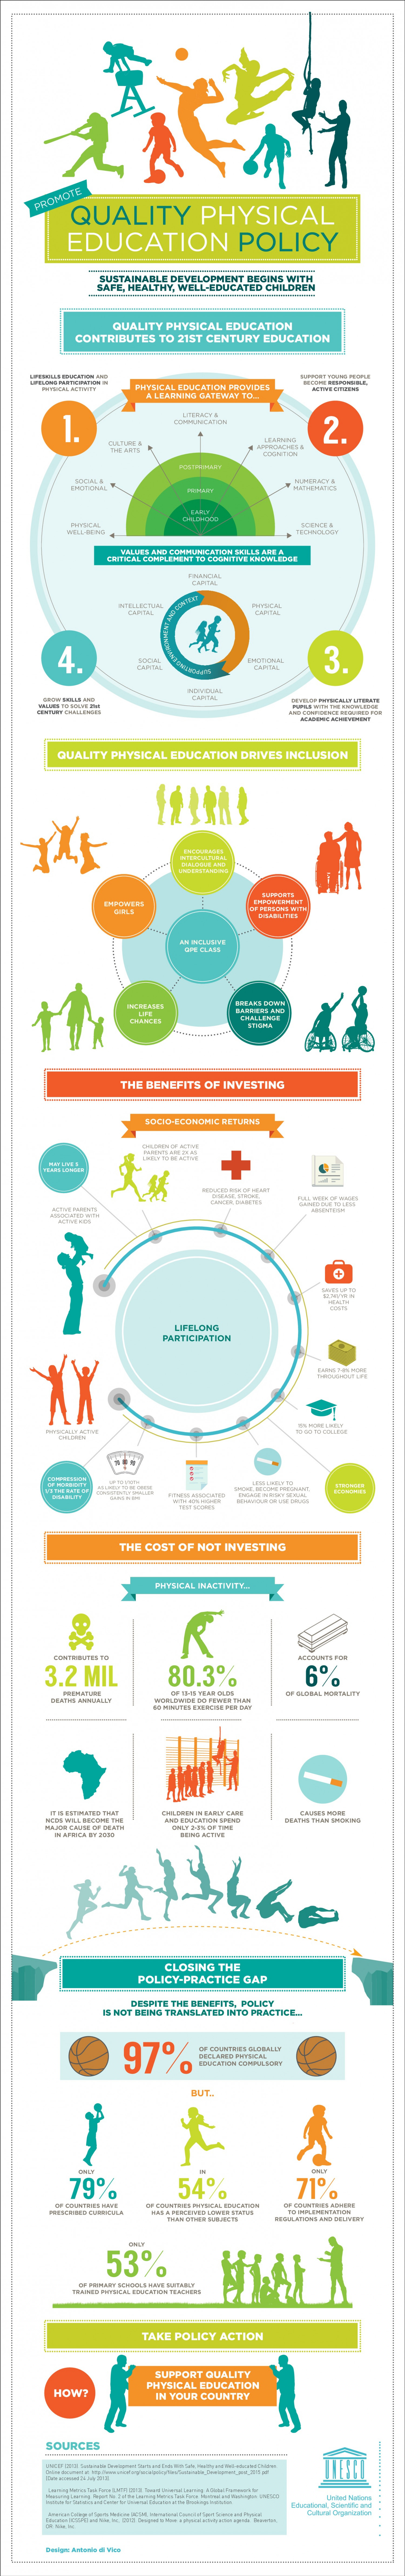 Why Invest in Physical Education and Sports Infographic